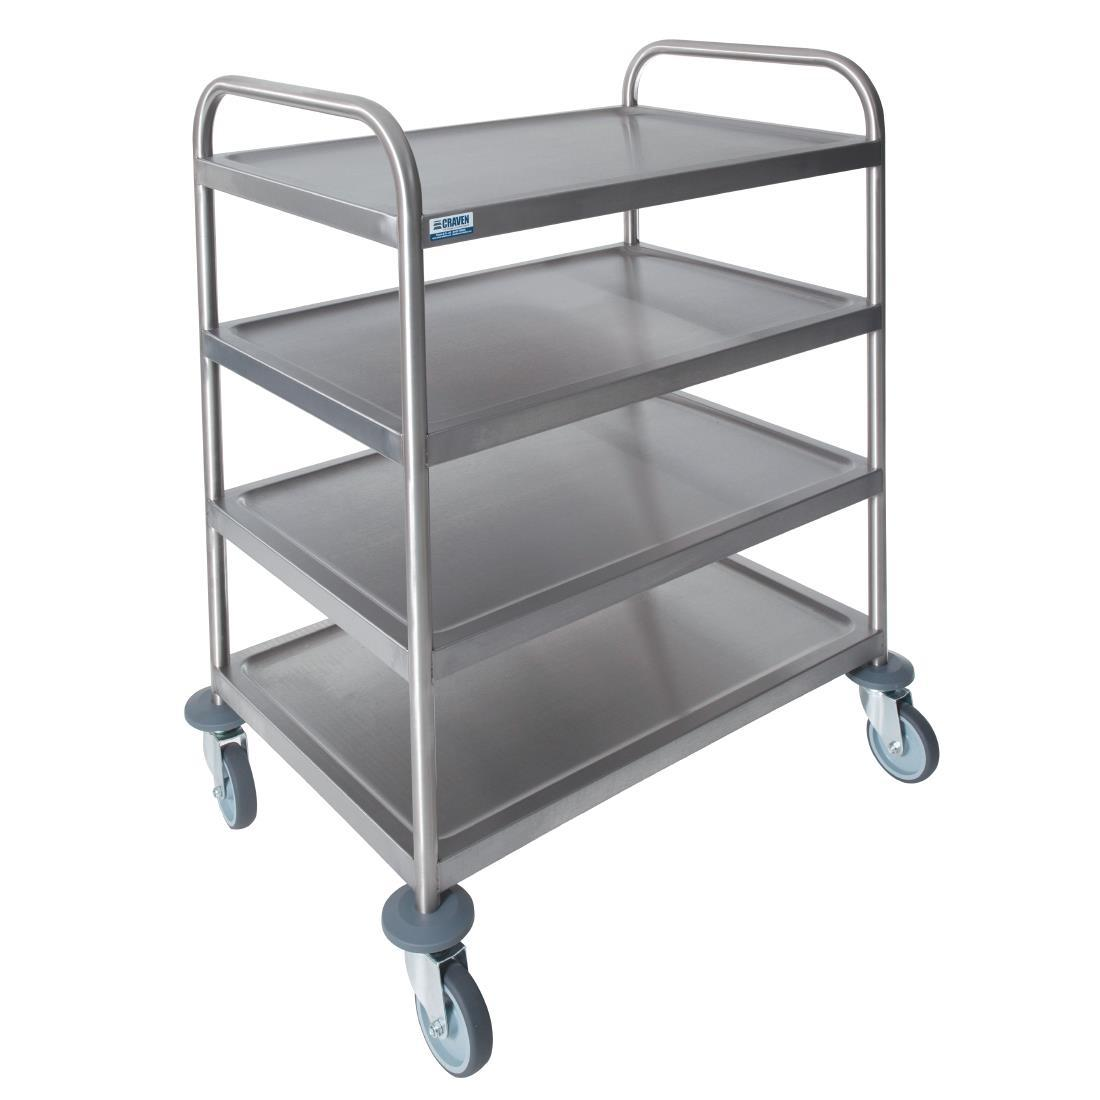 GG136 - Stainless steel, Fully welded construction, Bumpers fitted as standard, 4 tiers, Max weight capacity: 60kg, Useable area (mm): 701 x 450, Shelf size (mm): 75(L)x 501(W), Dimensions 970(H)x 821(W)x 571(D)mm